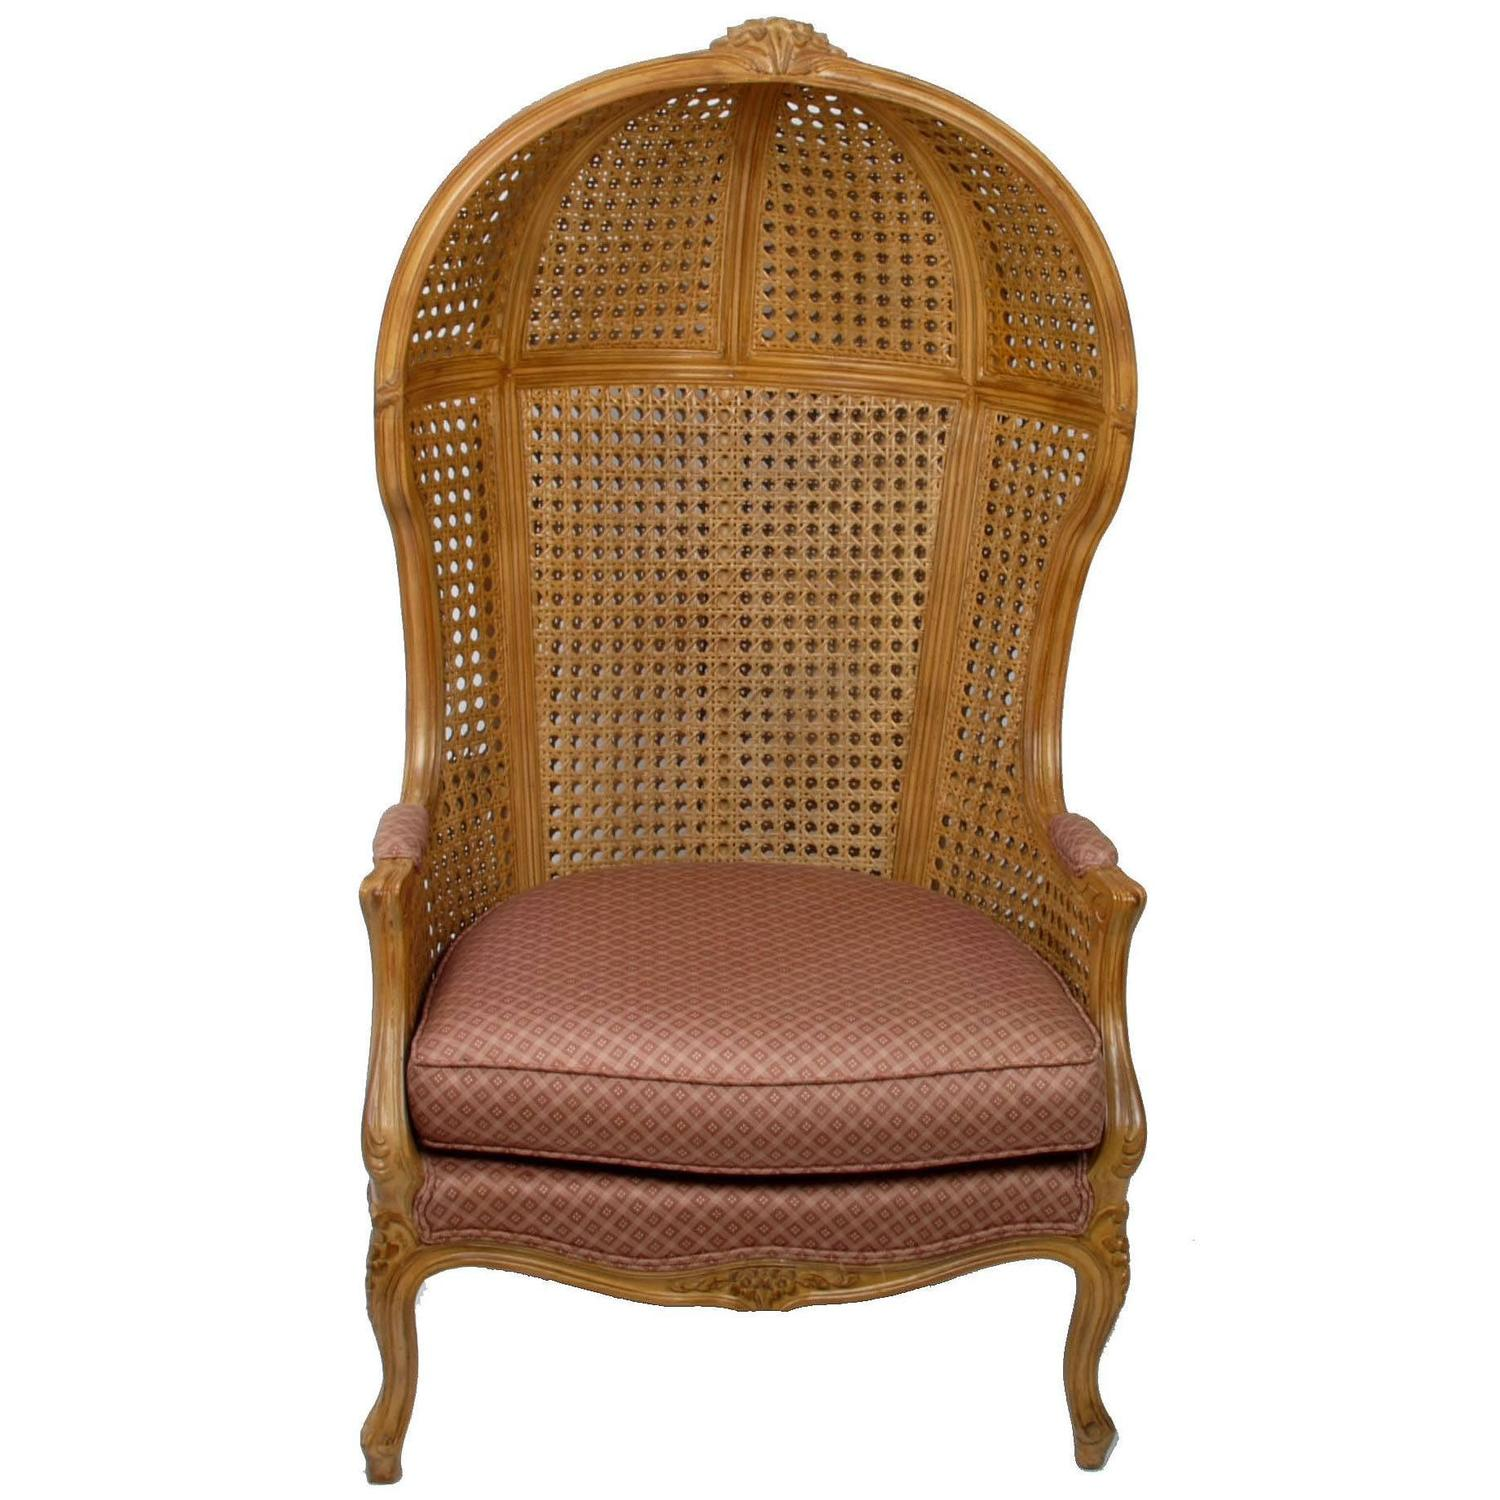 cane back chairs antique swivel chair for bedroom vintage hand carved high hooded sale